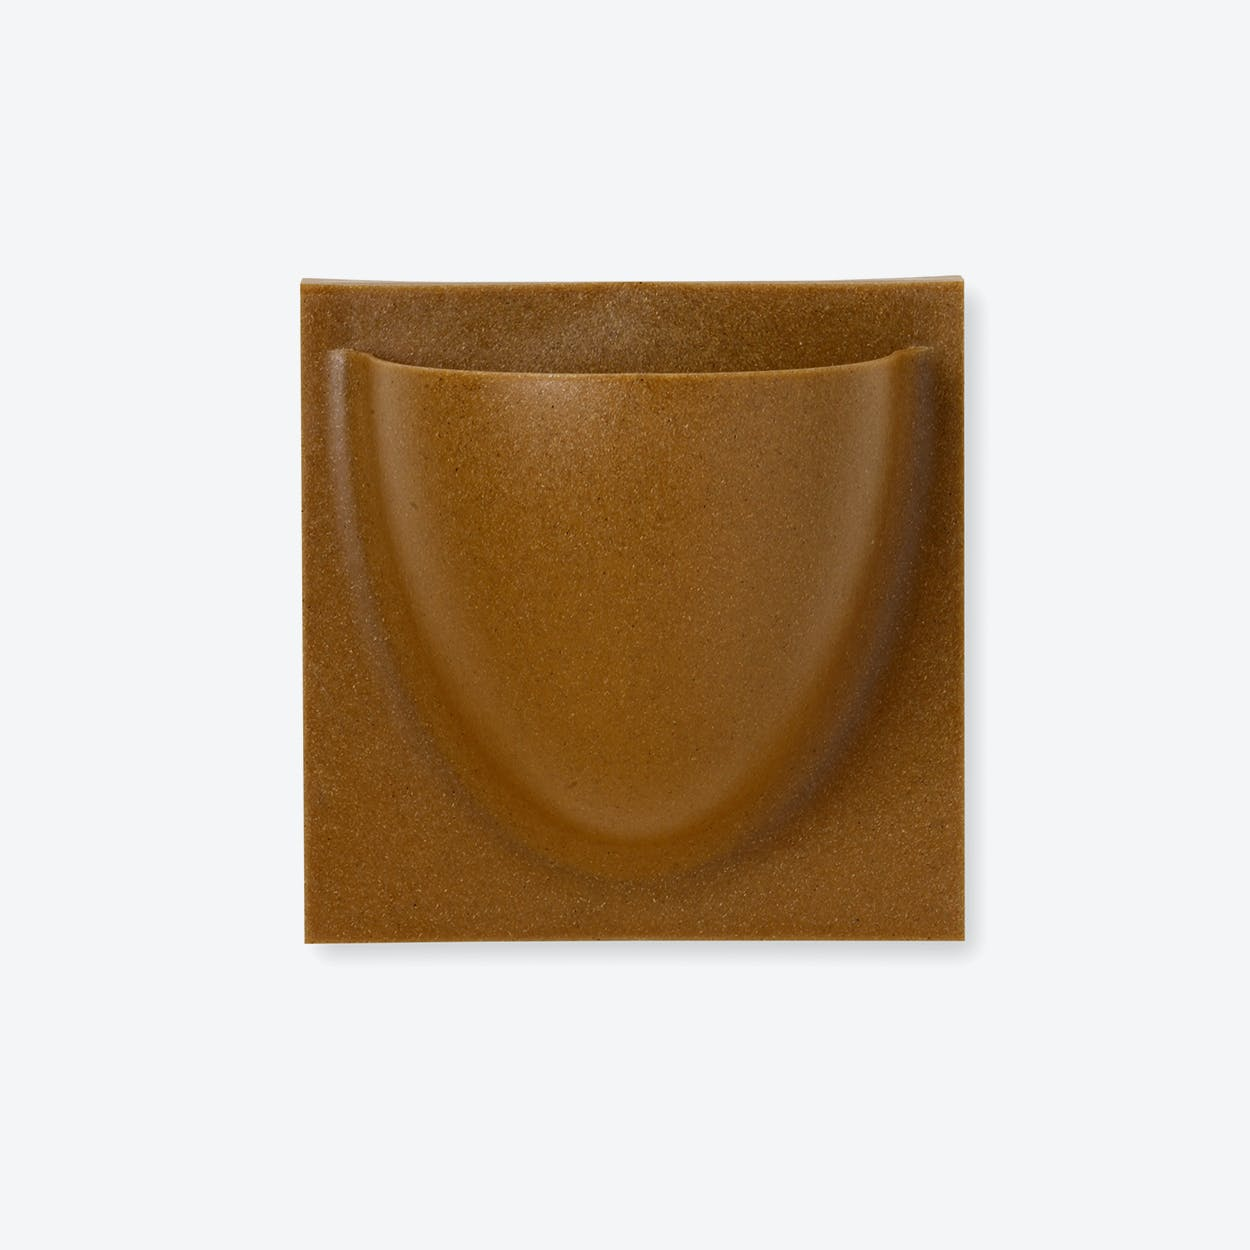 Wall Planter / Jar Mini in Caramel (Biofiber) (Set of 2)